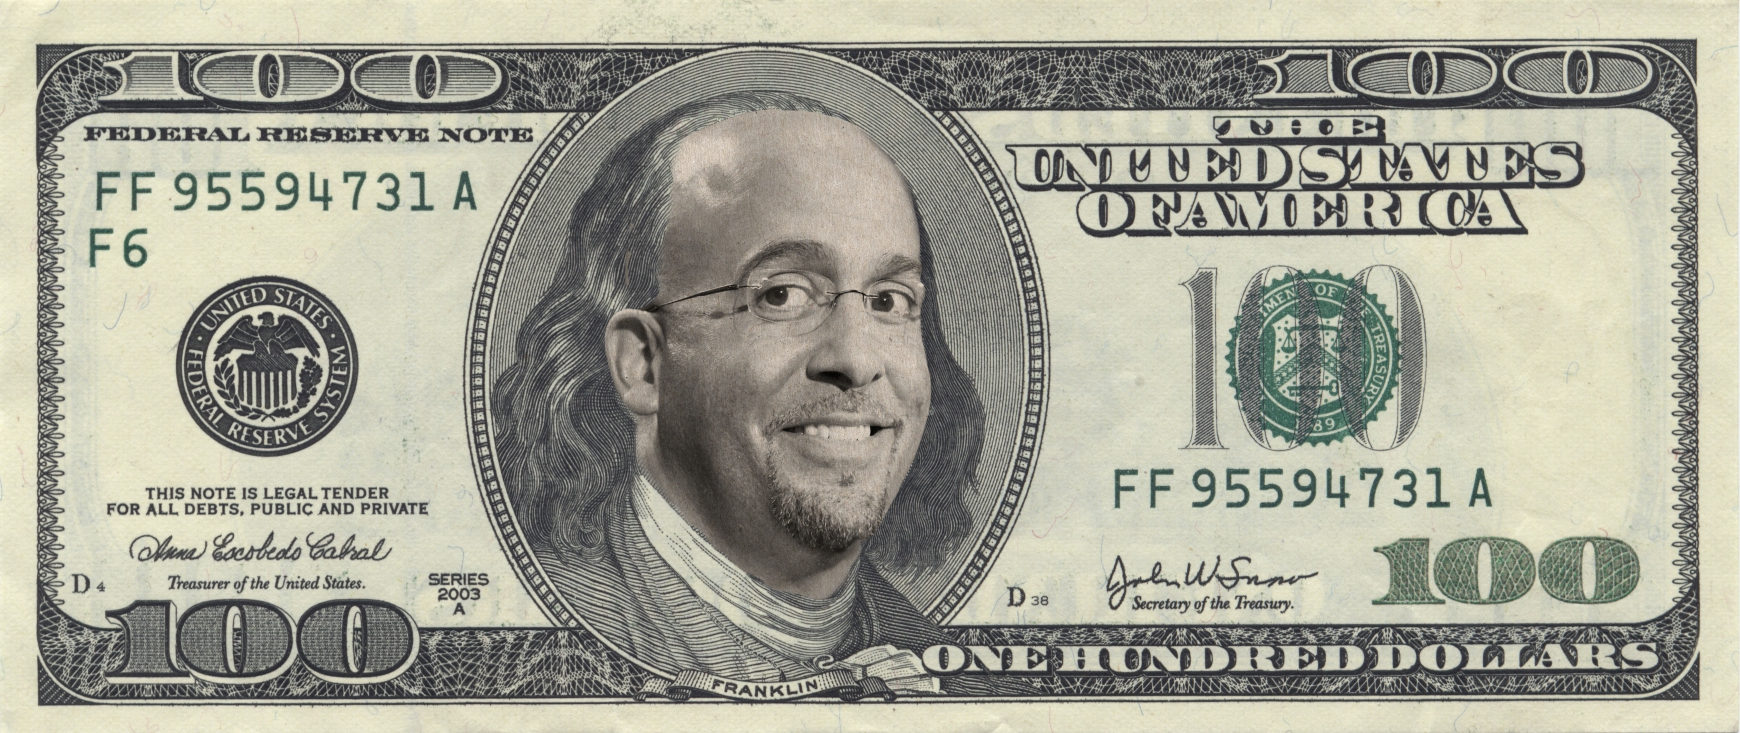 james franklin reportedly related to benjamin franklin onward state james franklin reportedly related to benjamin franklin